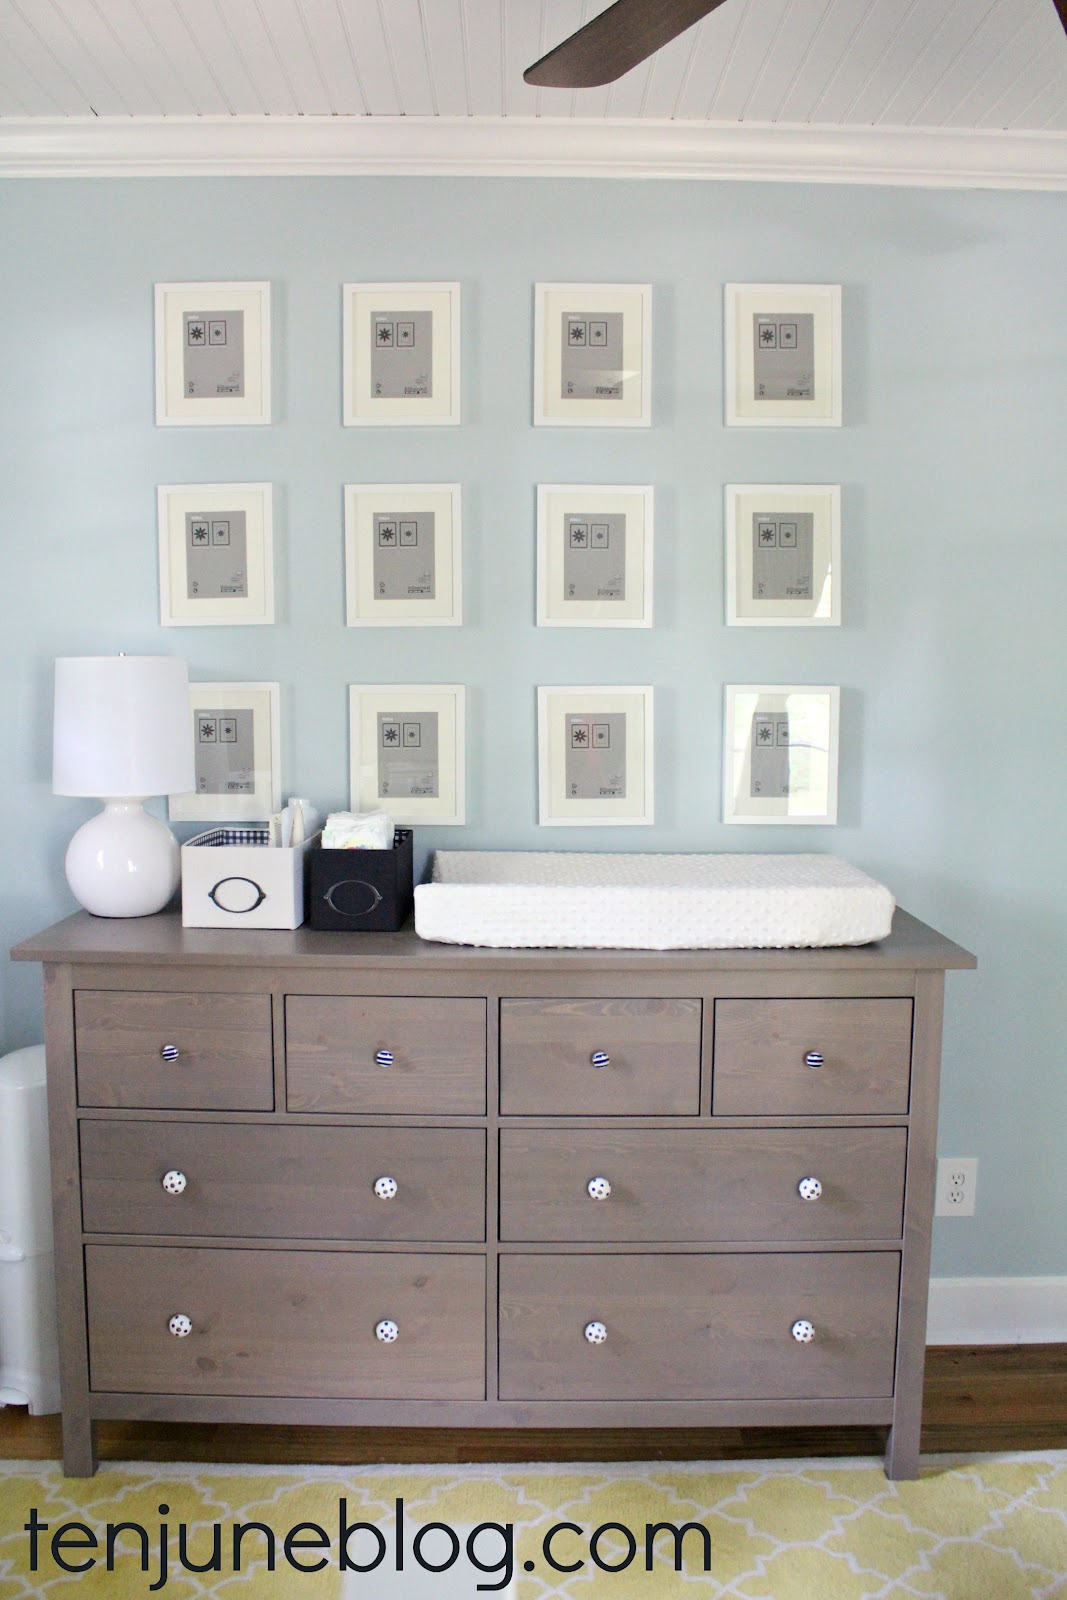 It Took Me Awhile But We Finally Settled On Using The Ikea Hemnes Dresser In Gray Brown Originally I Had Planned To Use White Version Of This Piece